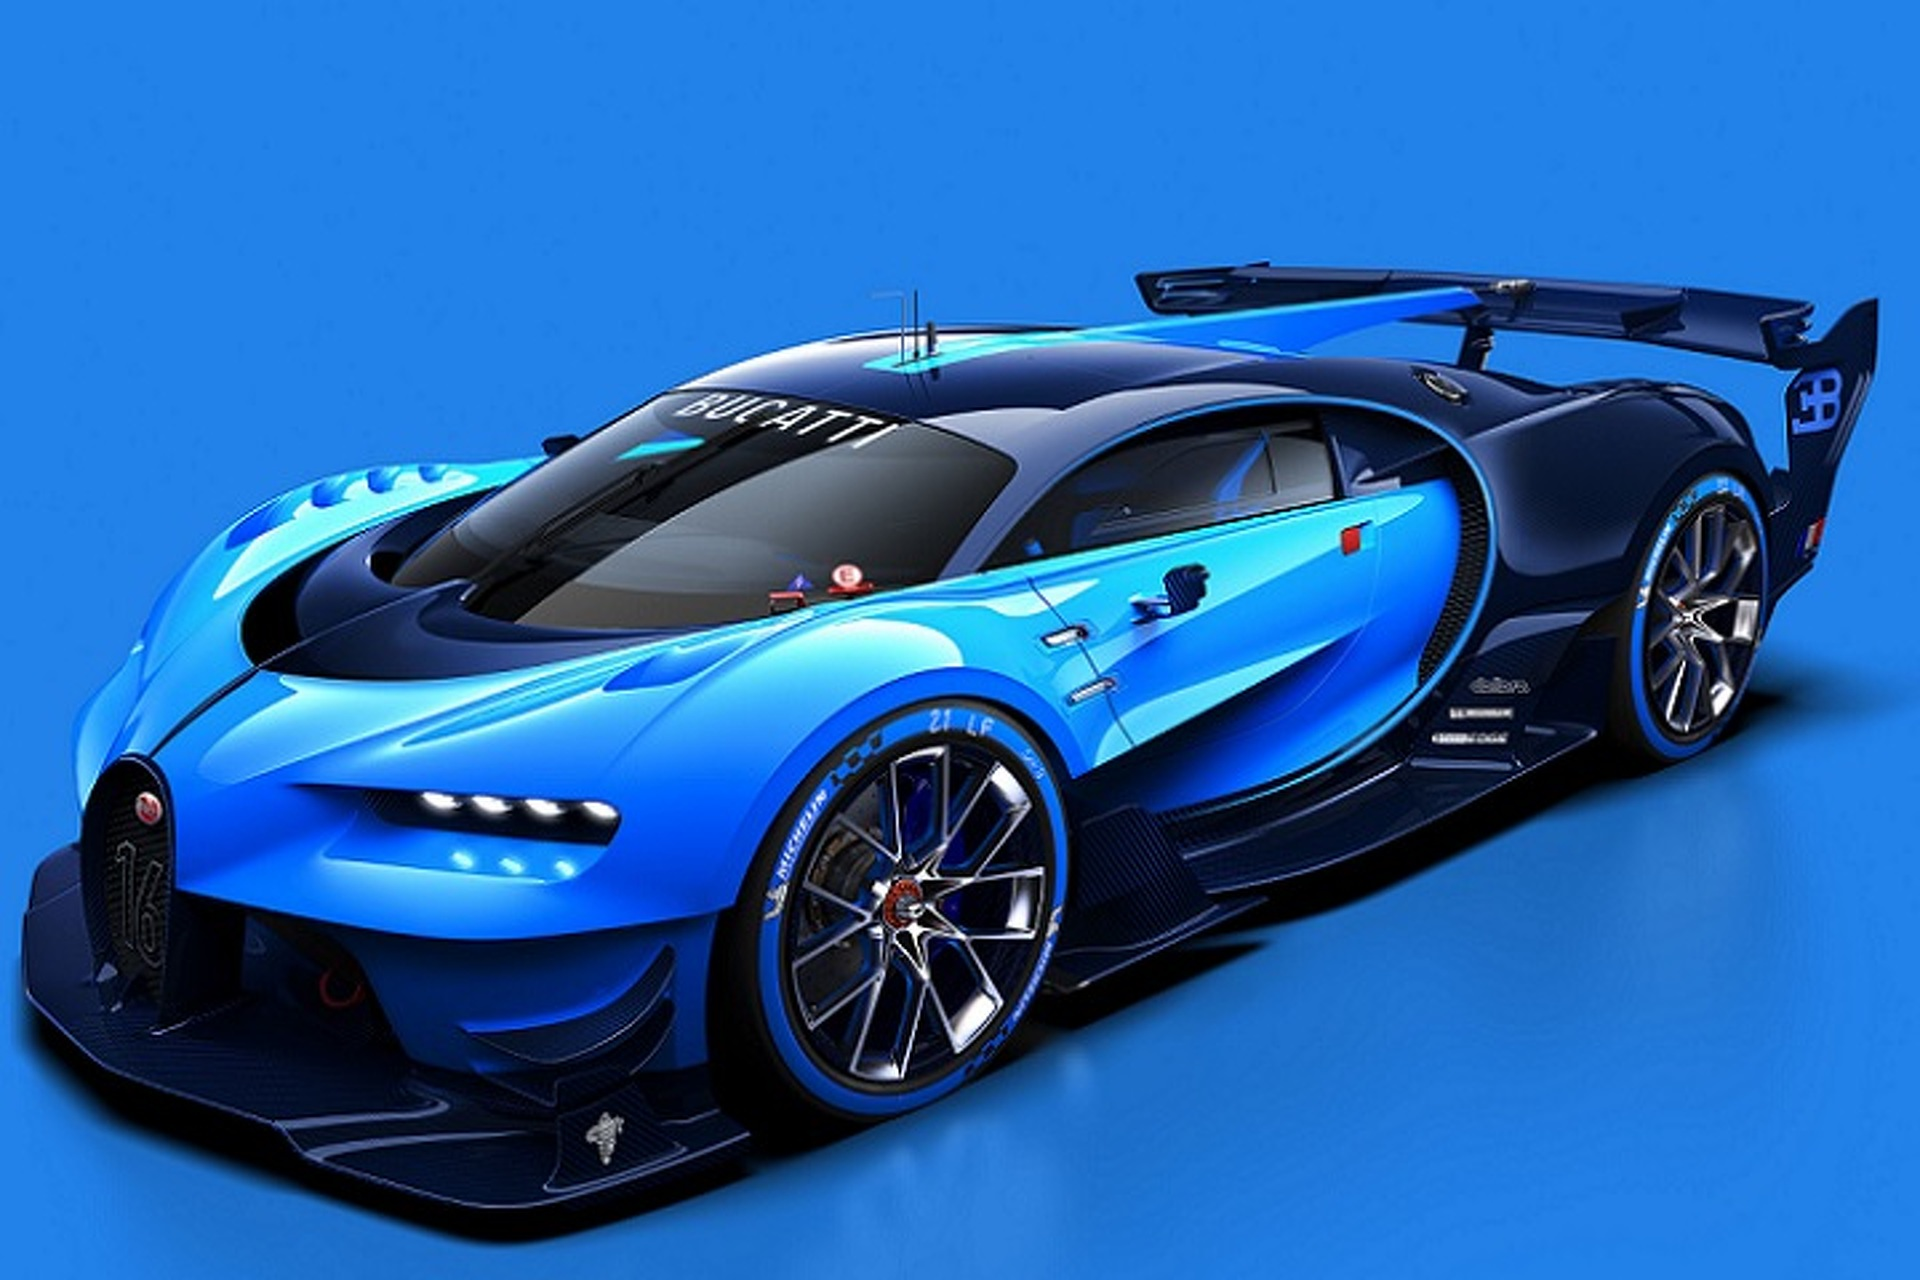 Is The Bugatti Vision GT Actually The Chiron In Race Disguise? Chiron Bugatti Vision Gt on mitsubishi gt vision, subaru viziv gt vision, renault alpine gt vision, bmw gt vision,